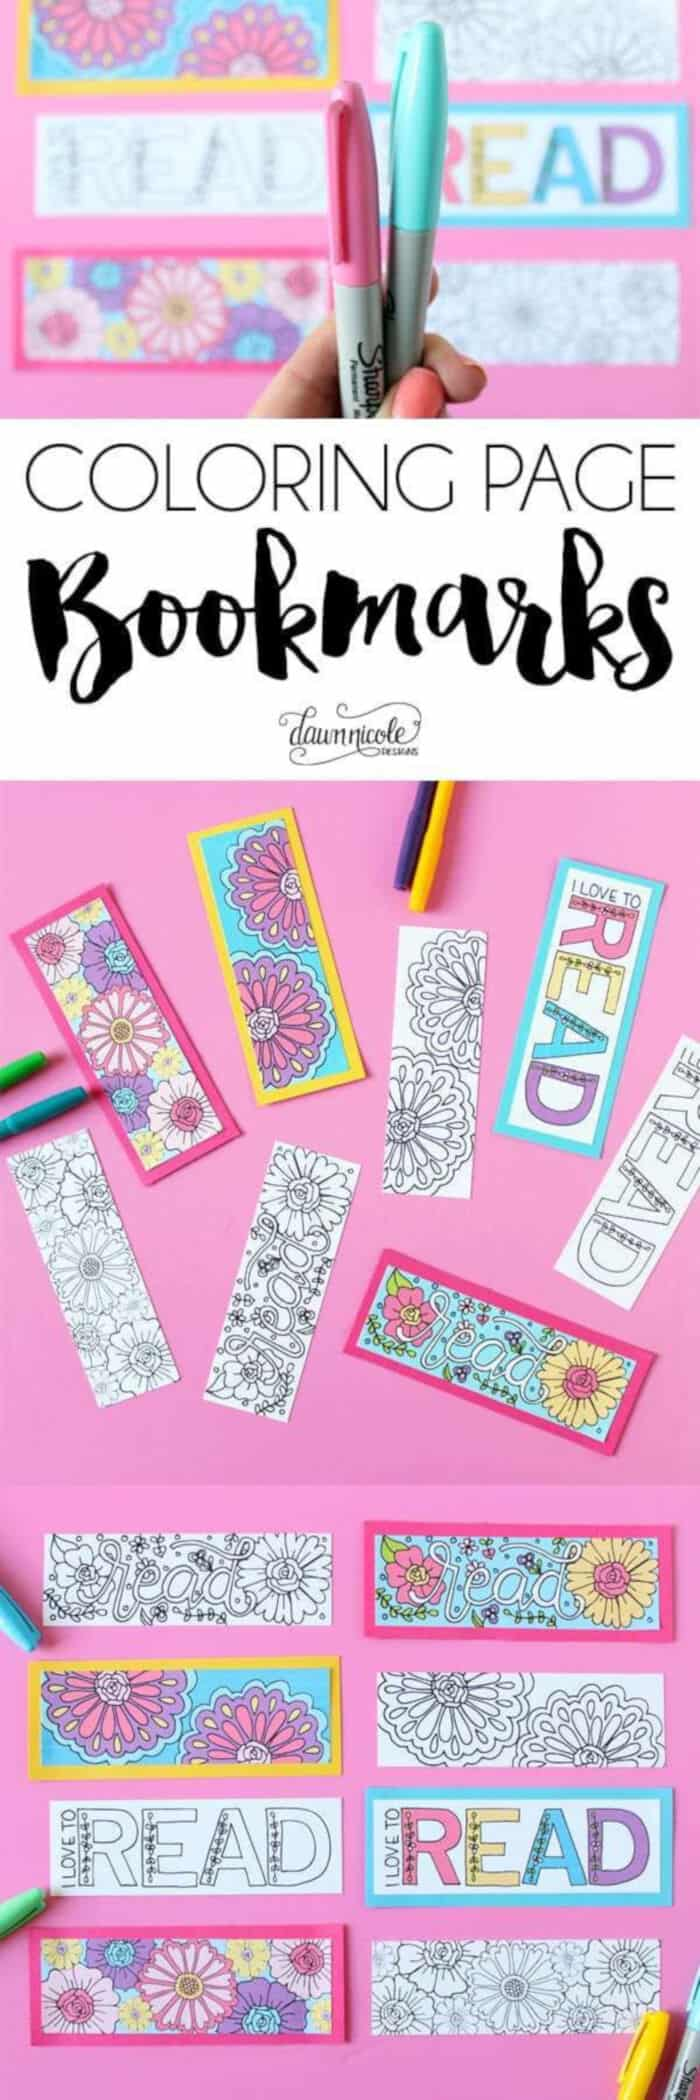 Summer-Coloring-Page-Bookmarks-by-Dawn-Nicole